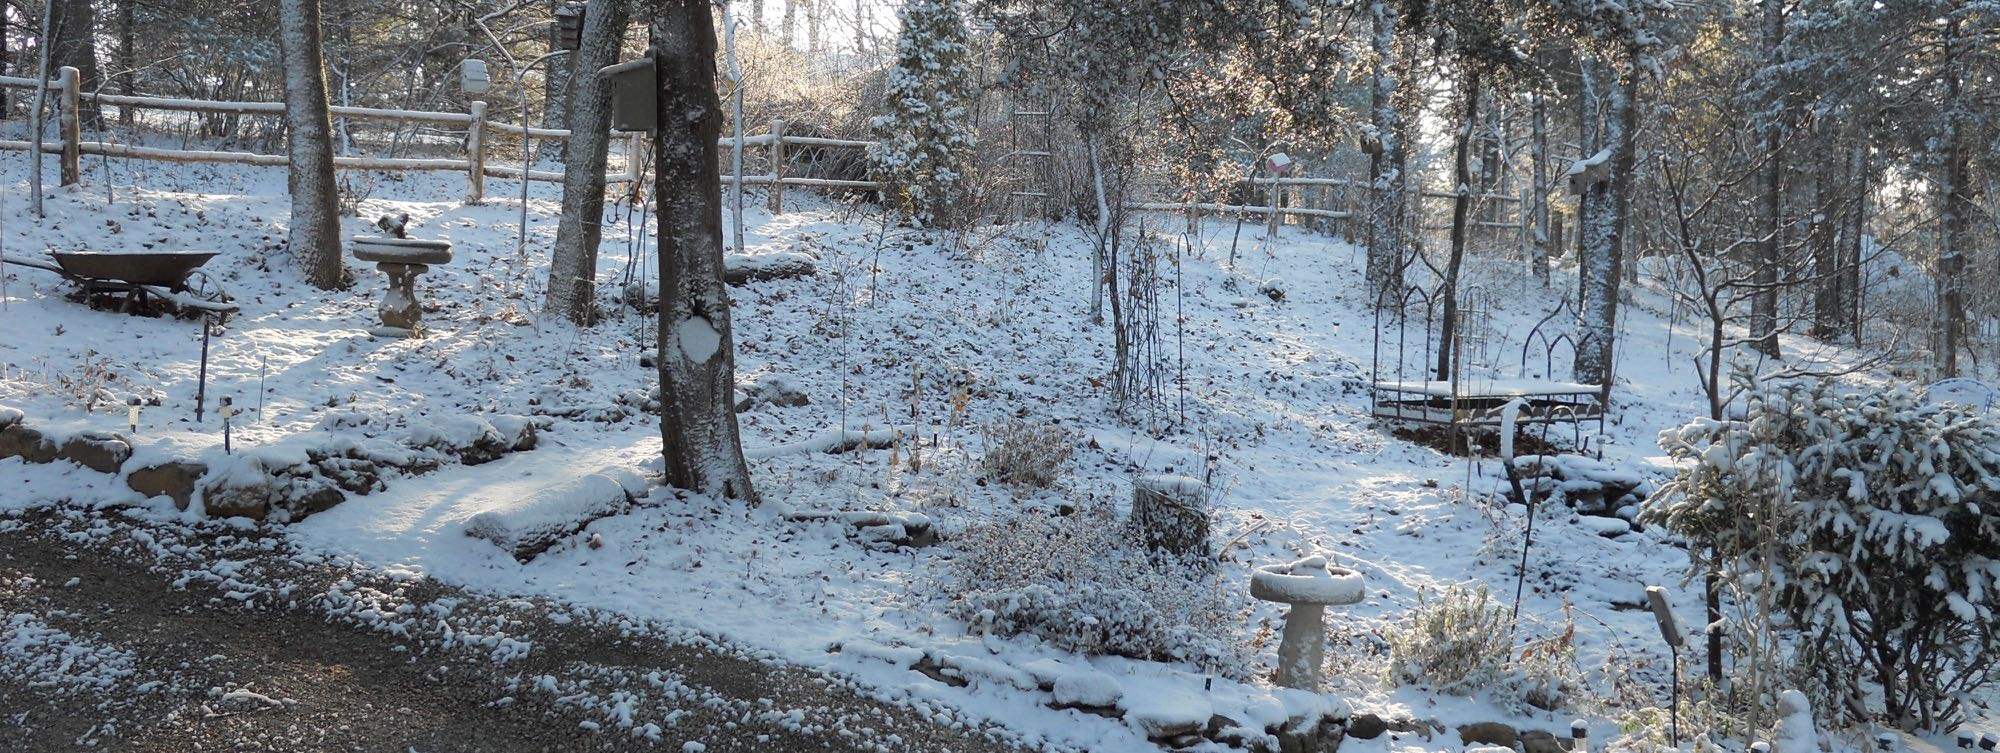 The front of my garden covered in snow. When the sun shines, the garden is magical!